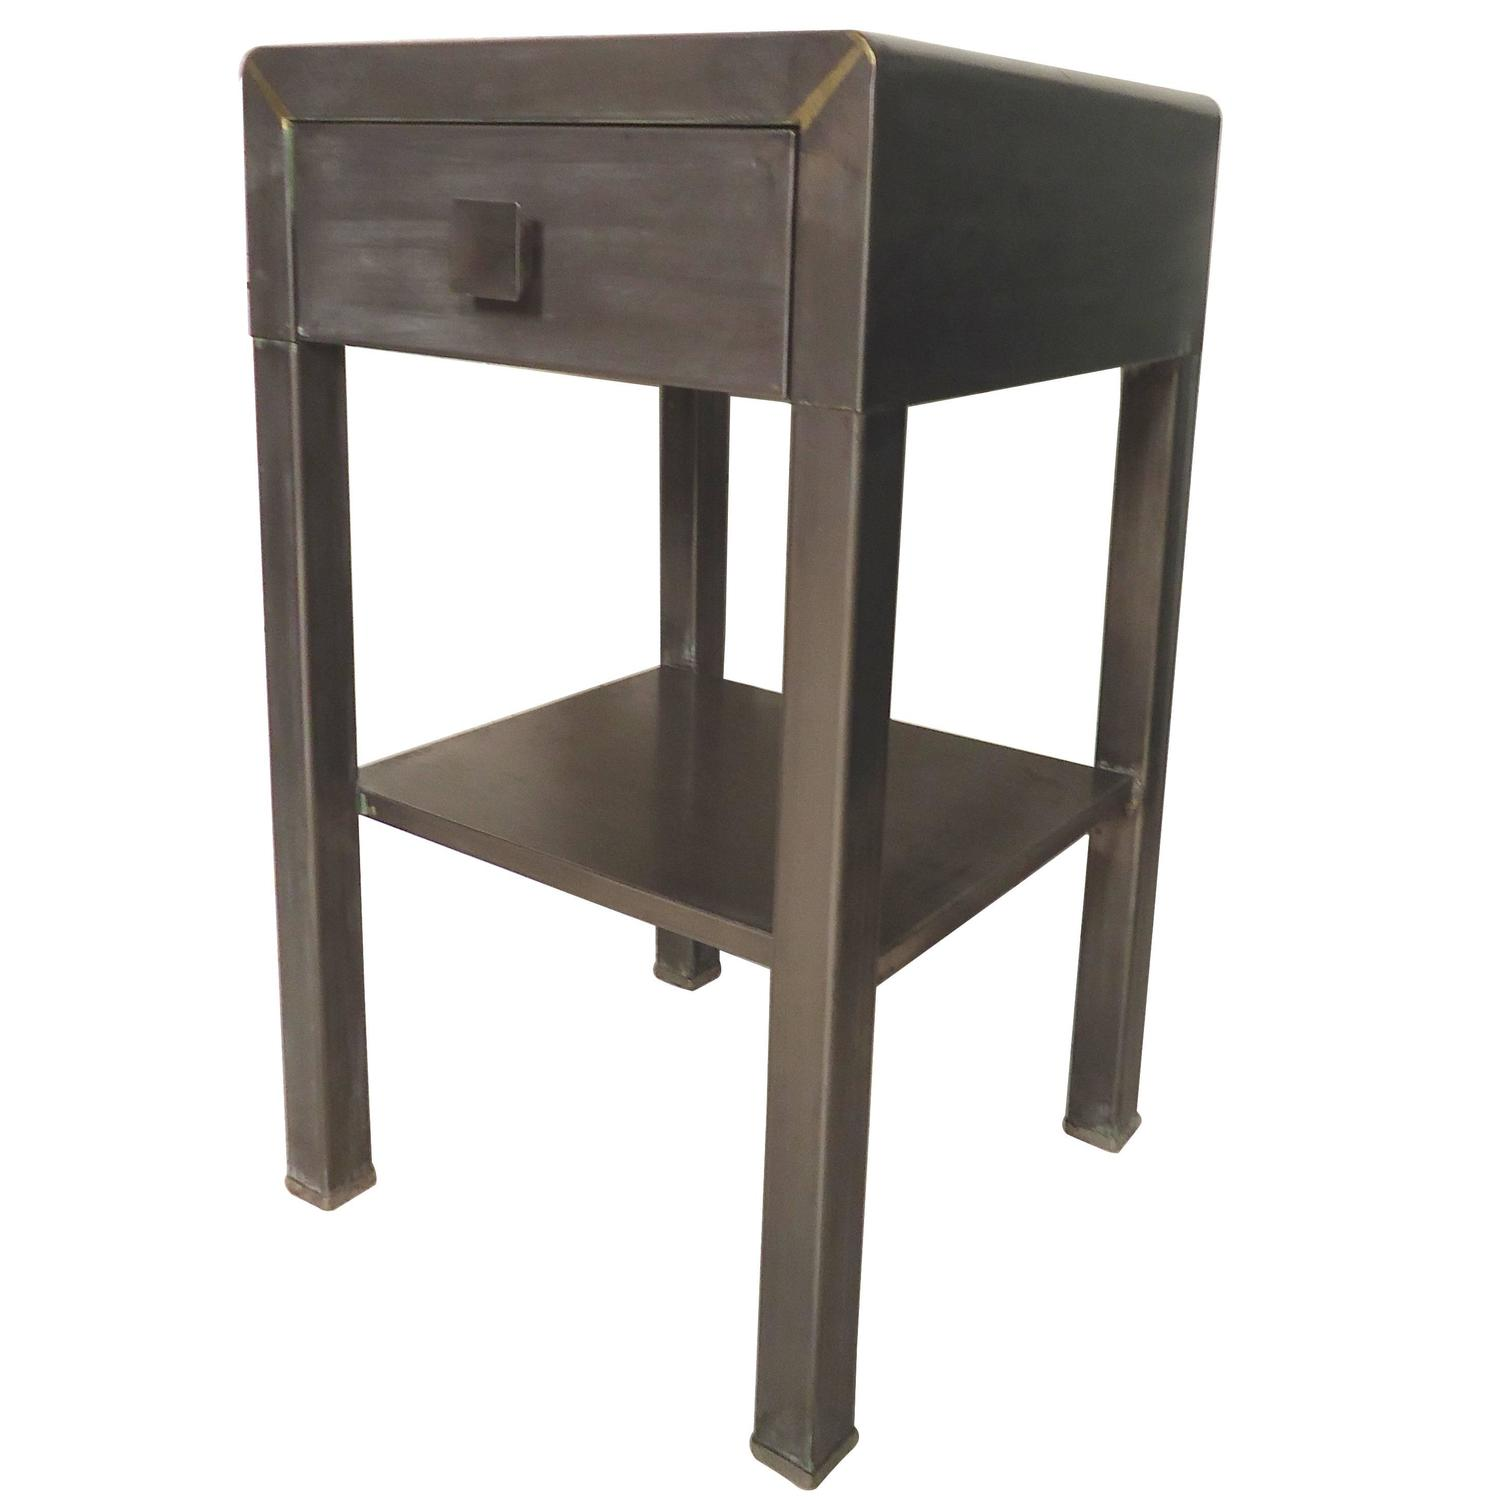 Side Table By Simmons With Industrial Style Finish For